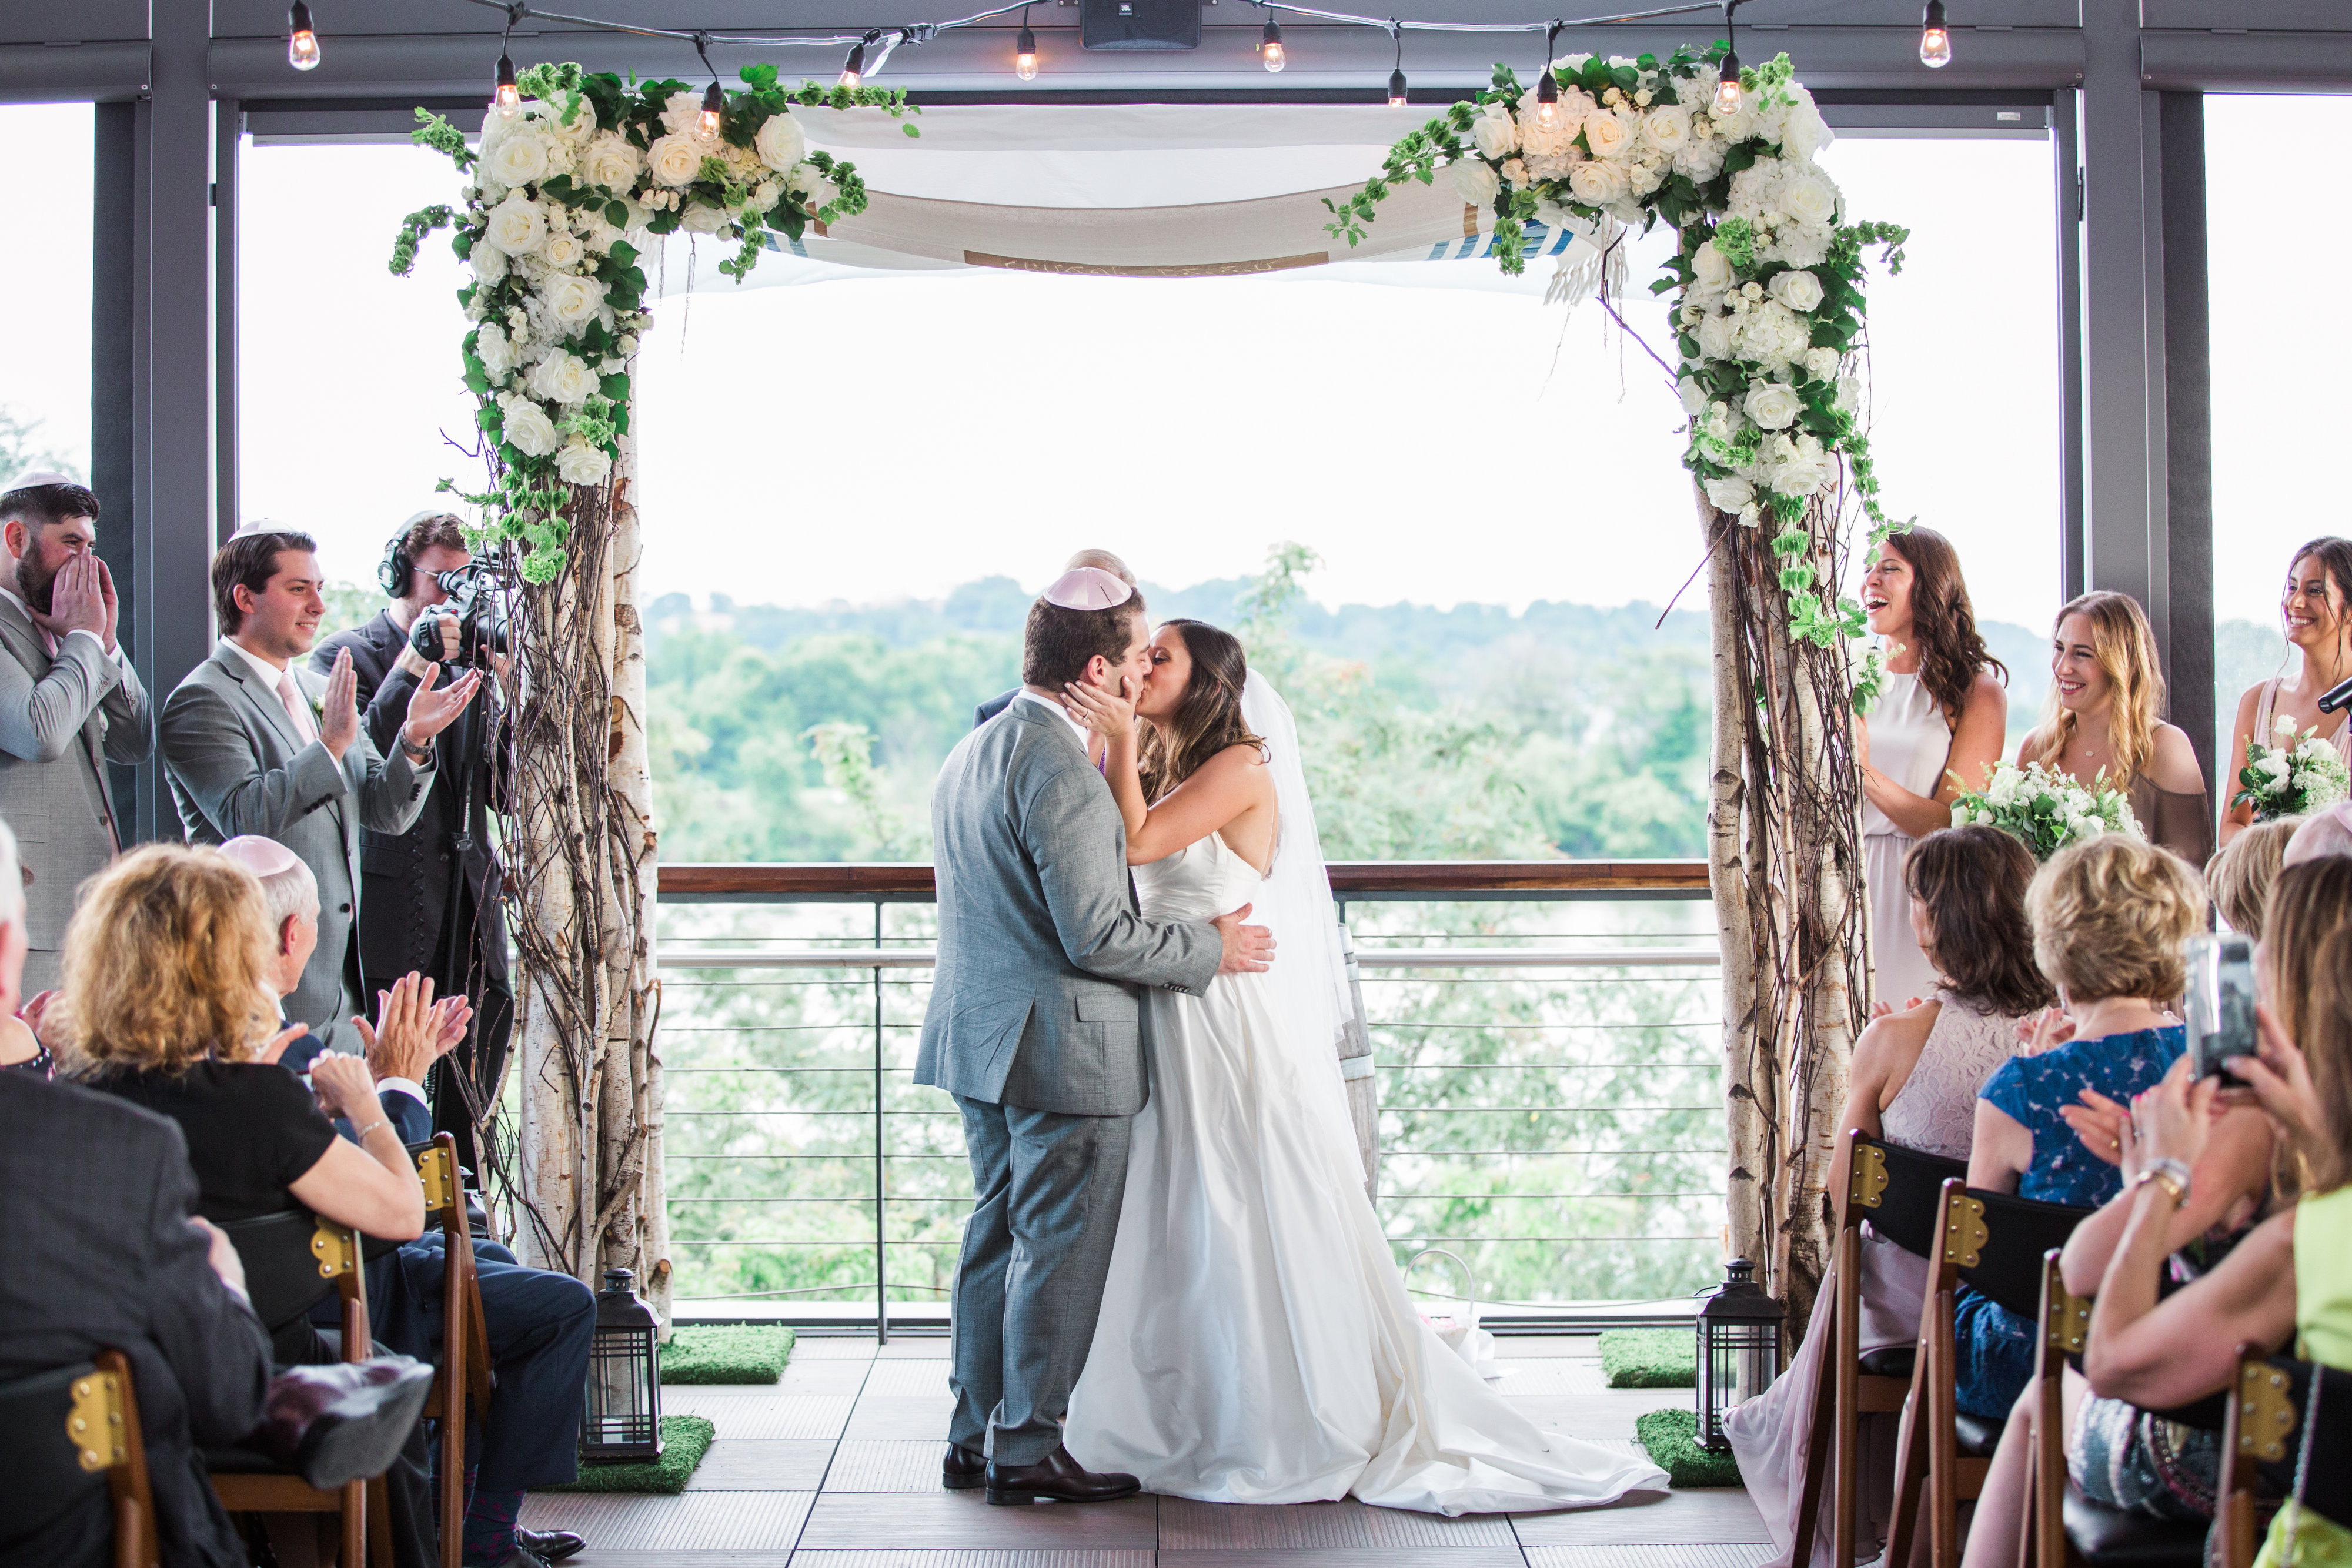 """We definitely splurged getting a videographer but it was so worth it,"" said Melissa. (Image: Birds of a Feather Photography/{ }http://birdsofafeatherphotos.com){ }"